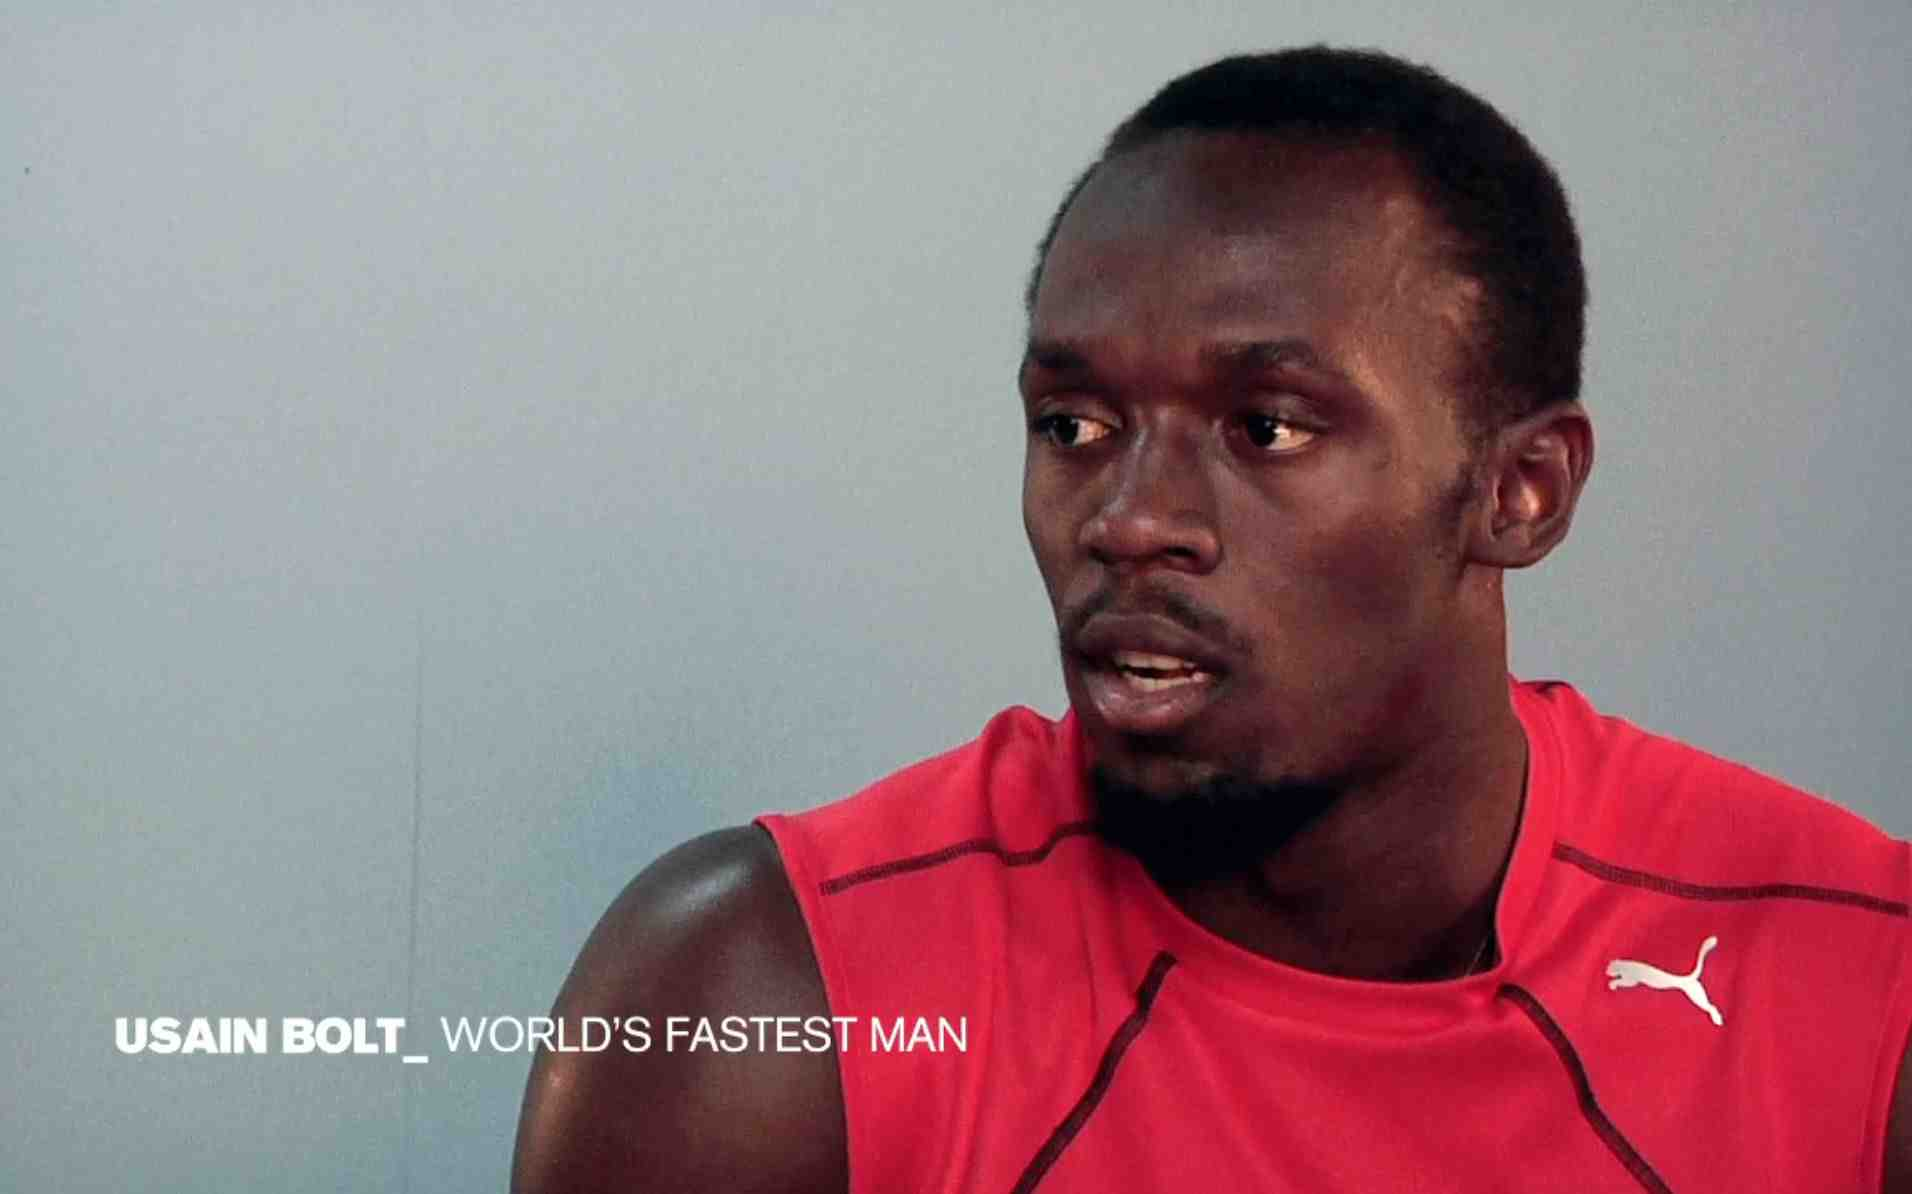 Usain Bolt and Nissan GT-R Team up for New Marketing Campaign